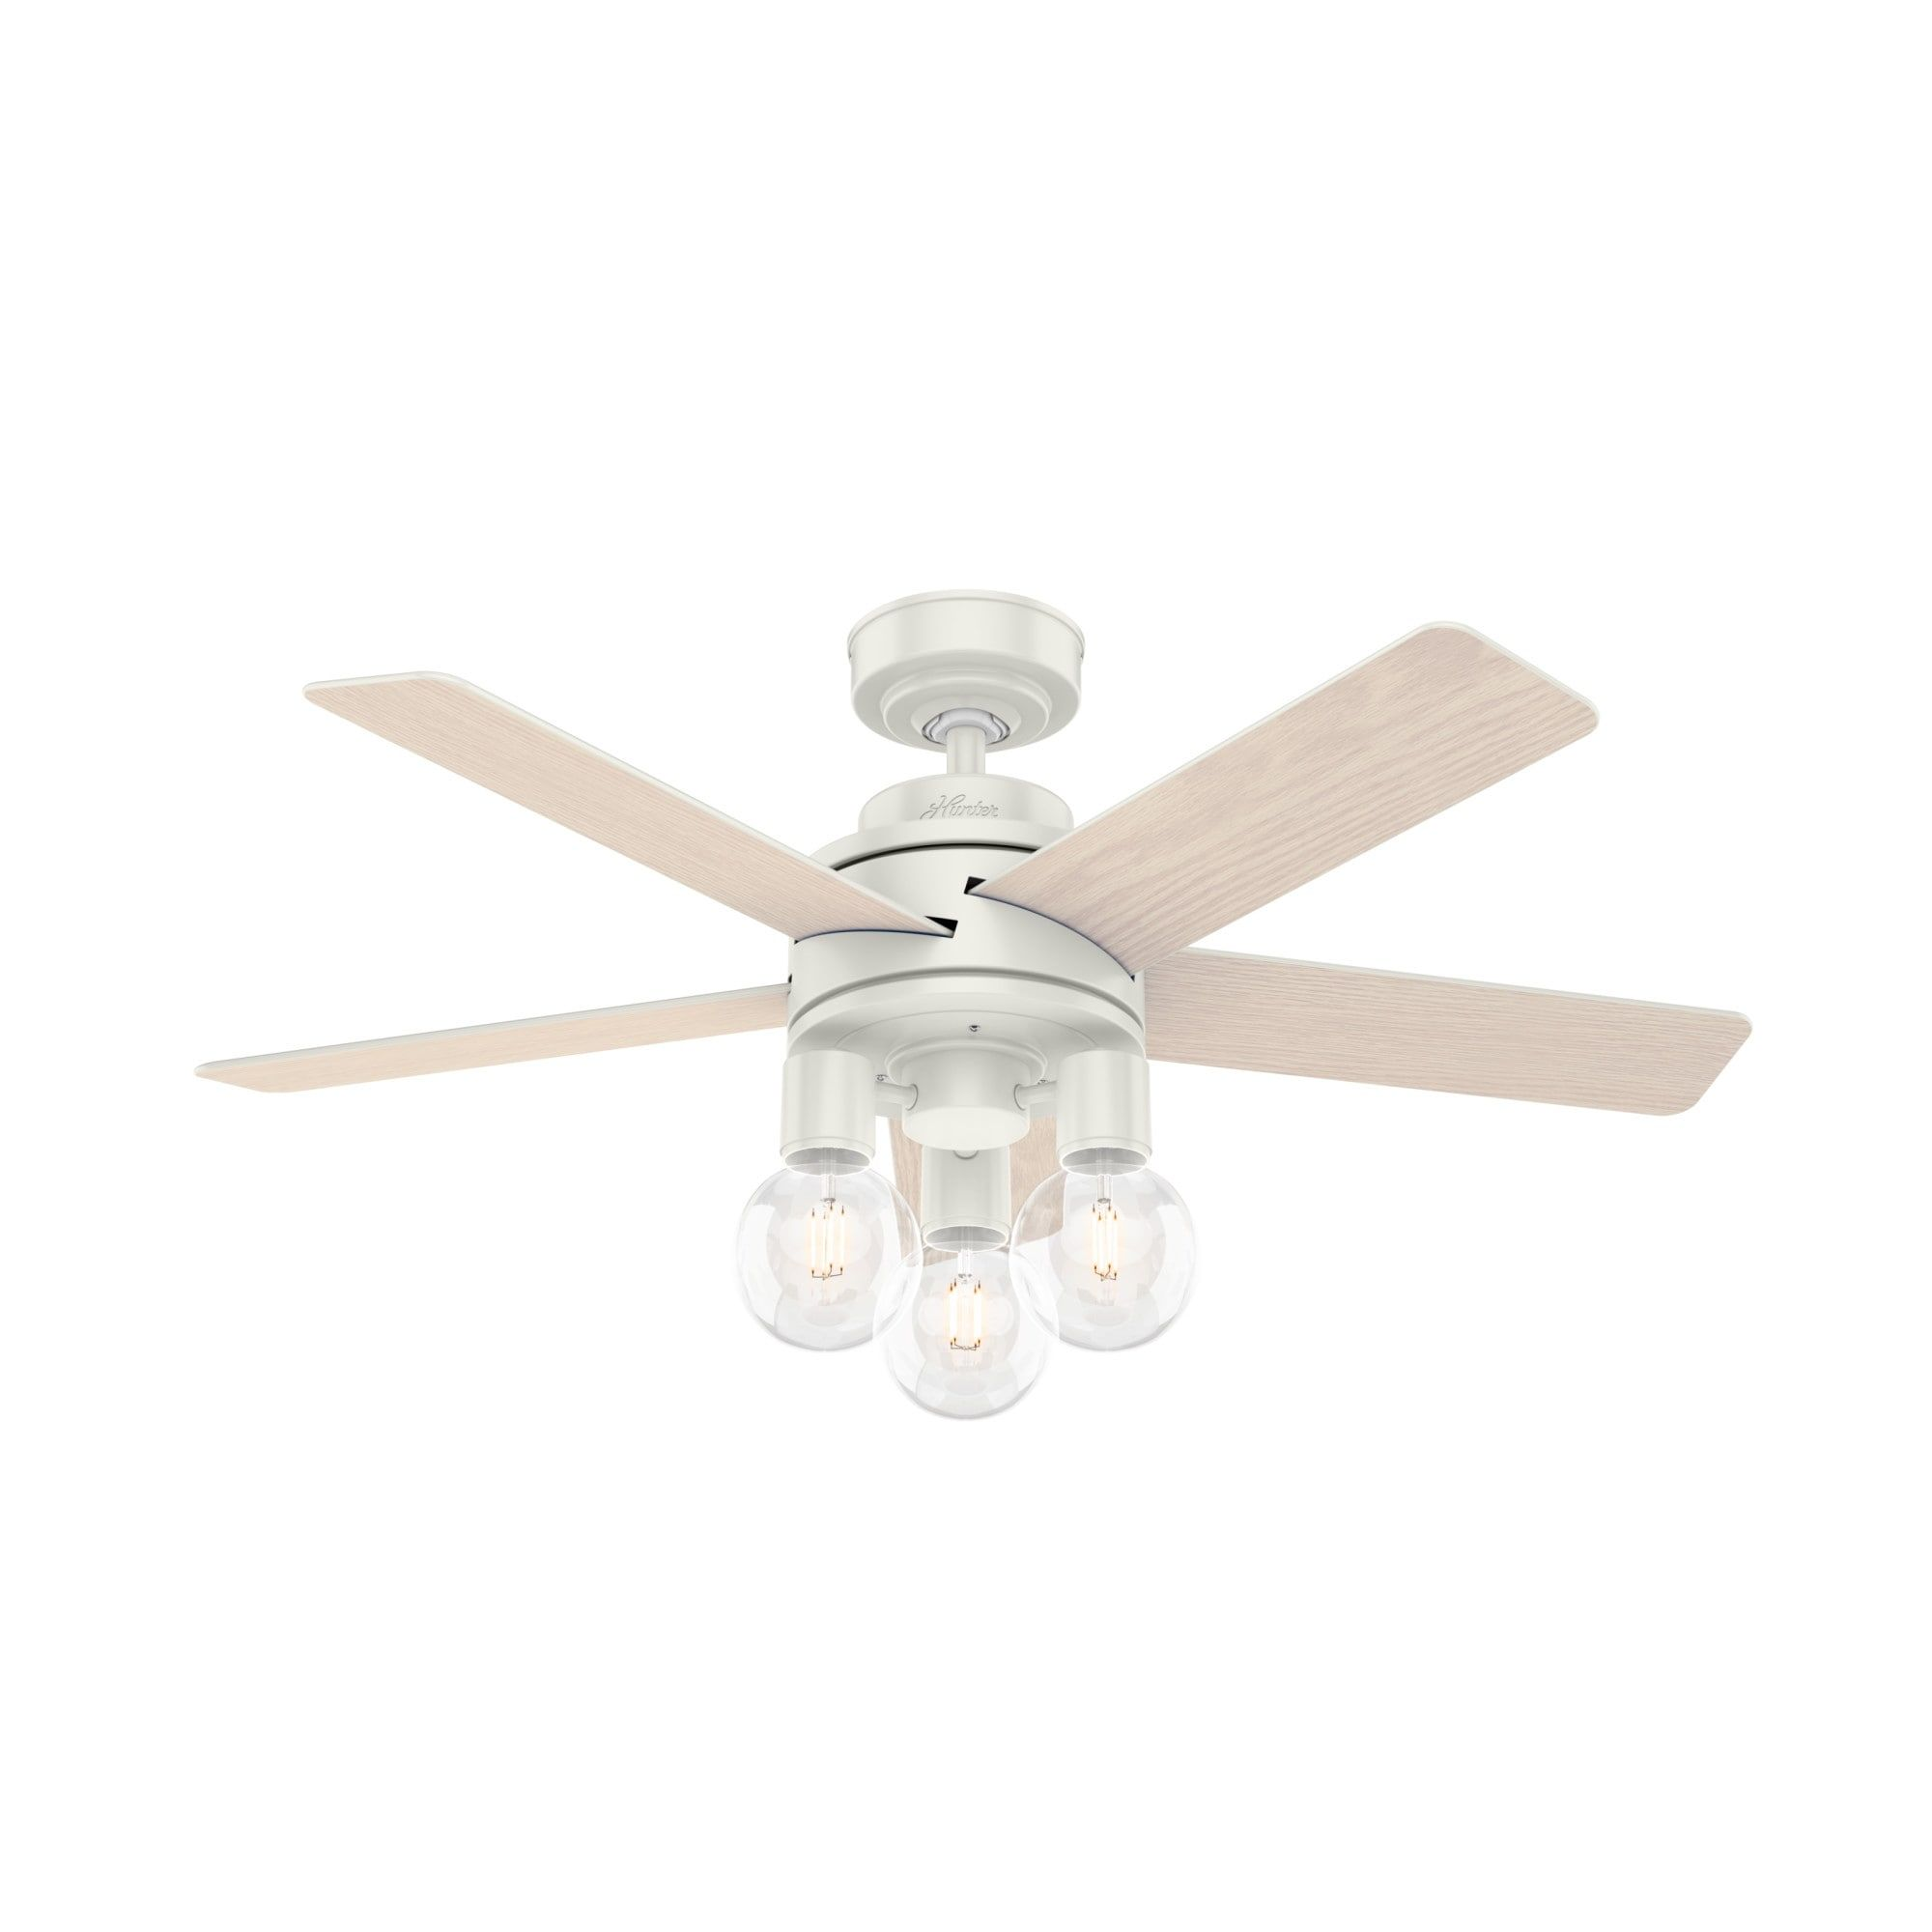 Overstock Com Online Shopping Bedding Furniture Electronics Jewelry Clothing More In 2021 Ceiling Fan With Light Ceiling Fan White Ceiling Fan